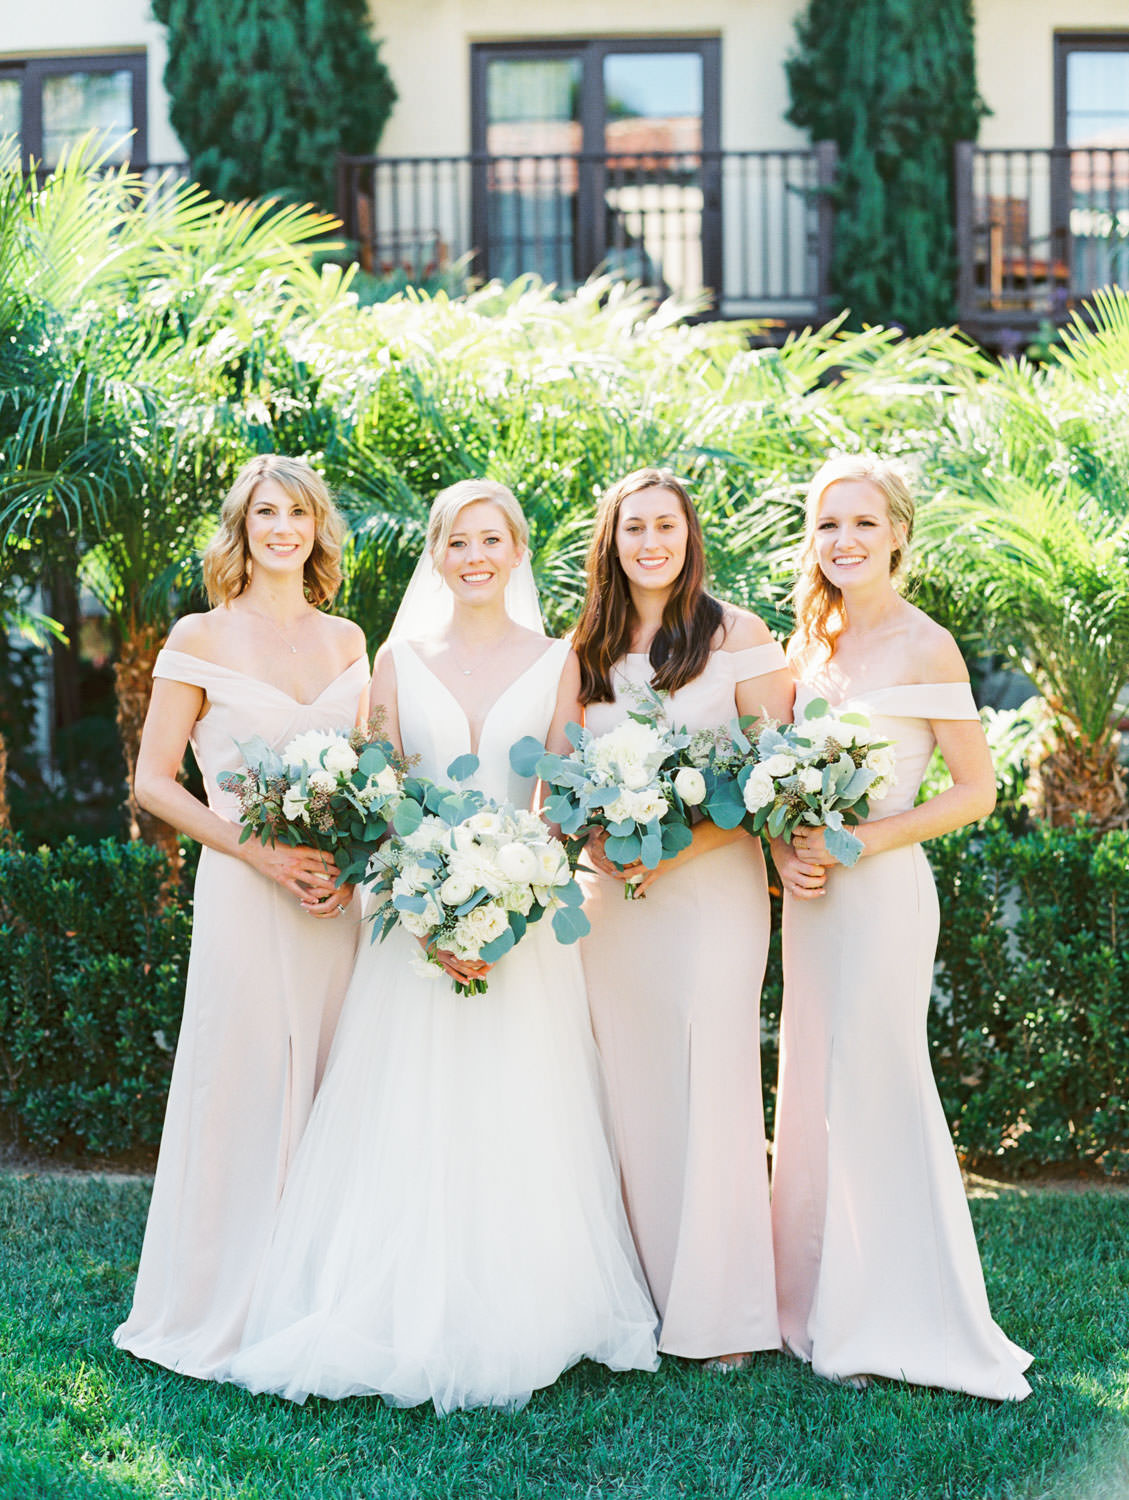 Bridal party portrait with blush gowns. Bride in Stella York gown with dahlia and rose ivory bouquet with silver dollar eucalyptus. La Jolla wedding shot on film by Cavin Elizabeth Photography